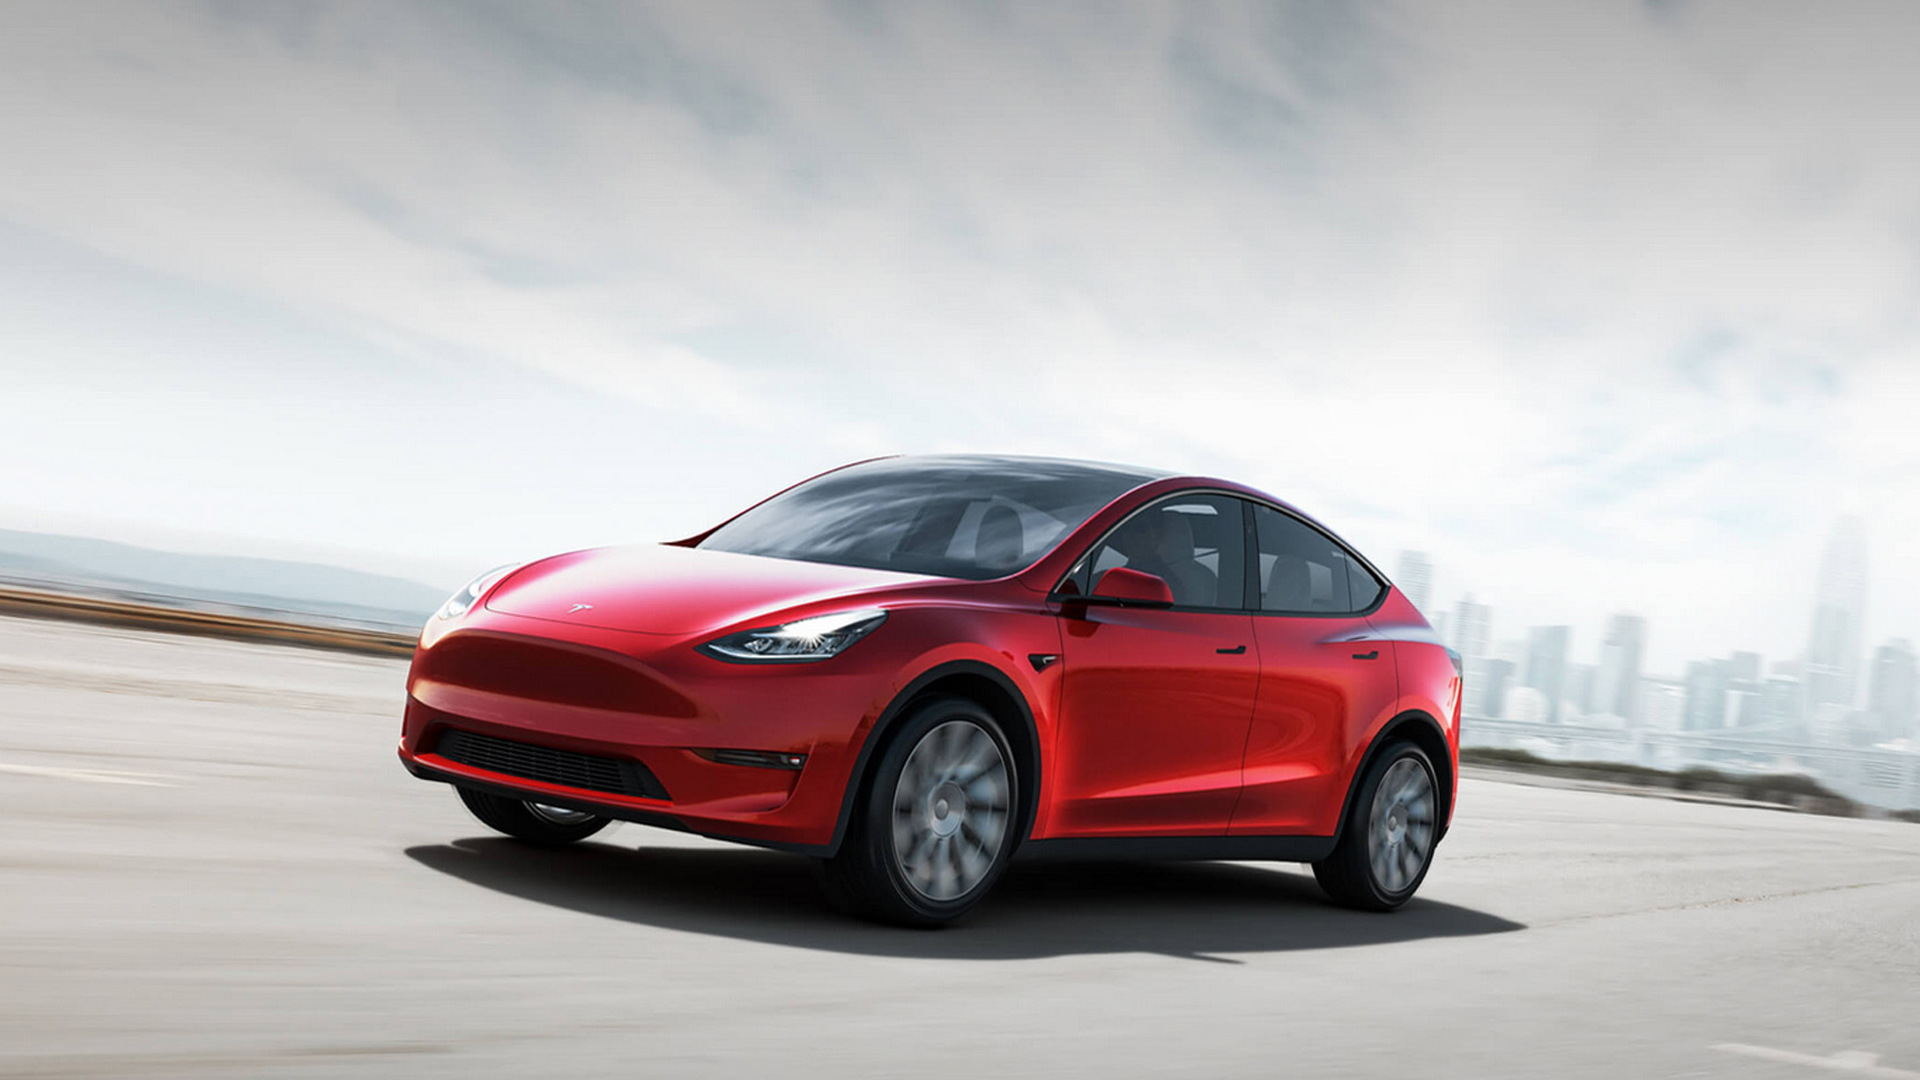 Tesla Model Y debuts in California with $39,000 base price